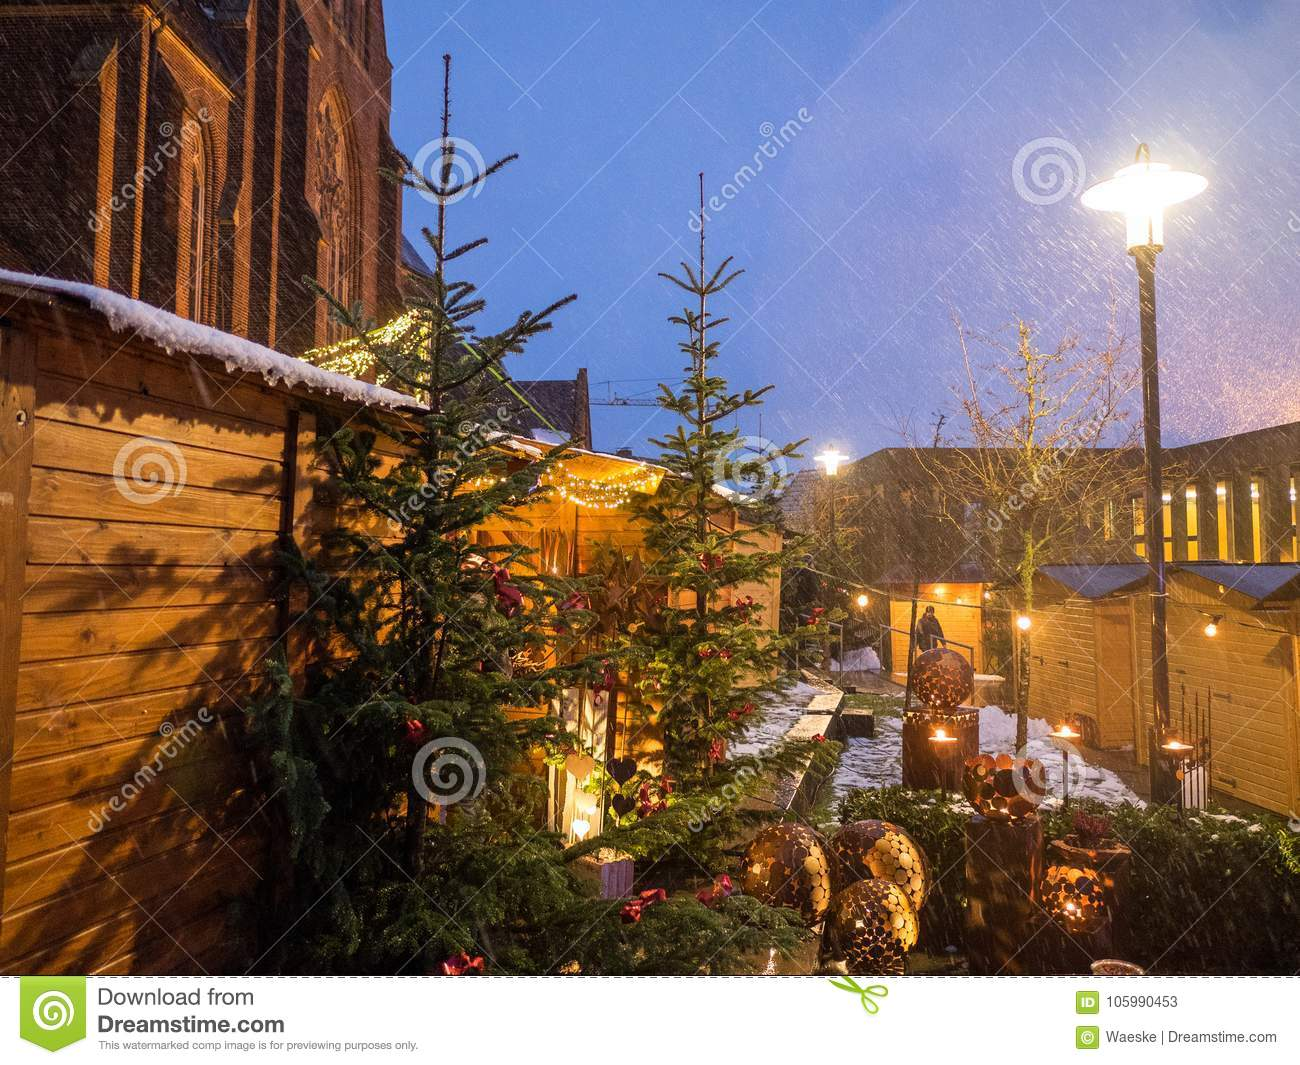 Christmas Town In Germany.Christmas Market In Germany Stock Image Image Of Christmas